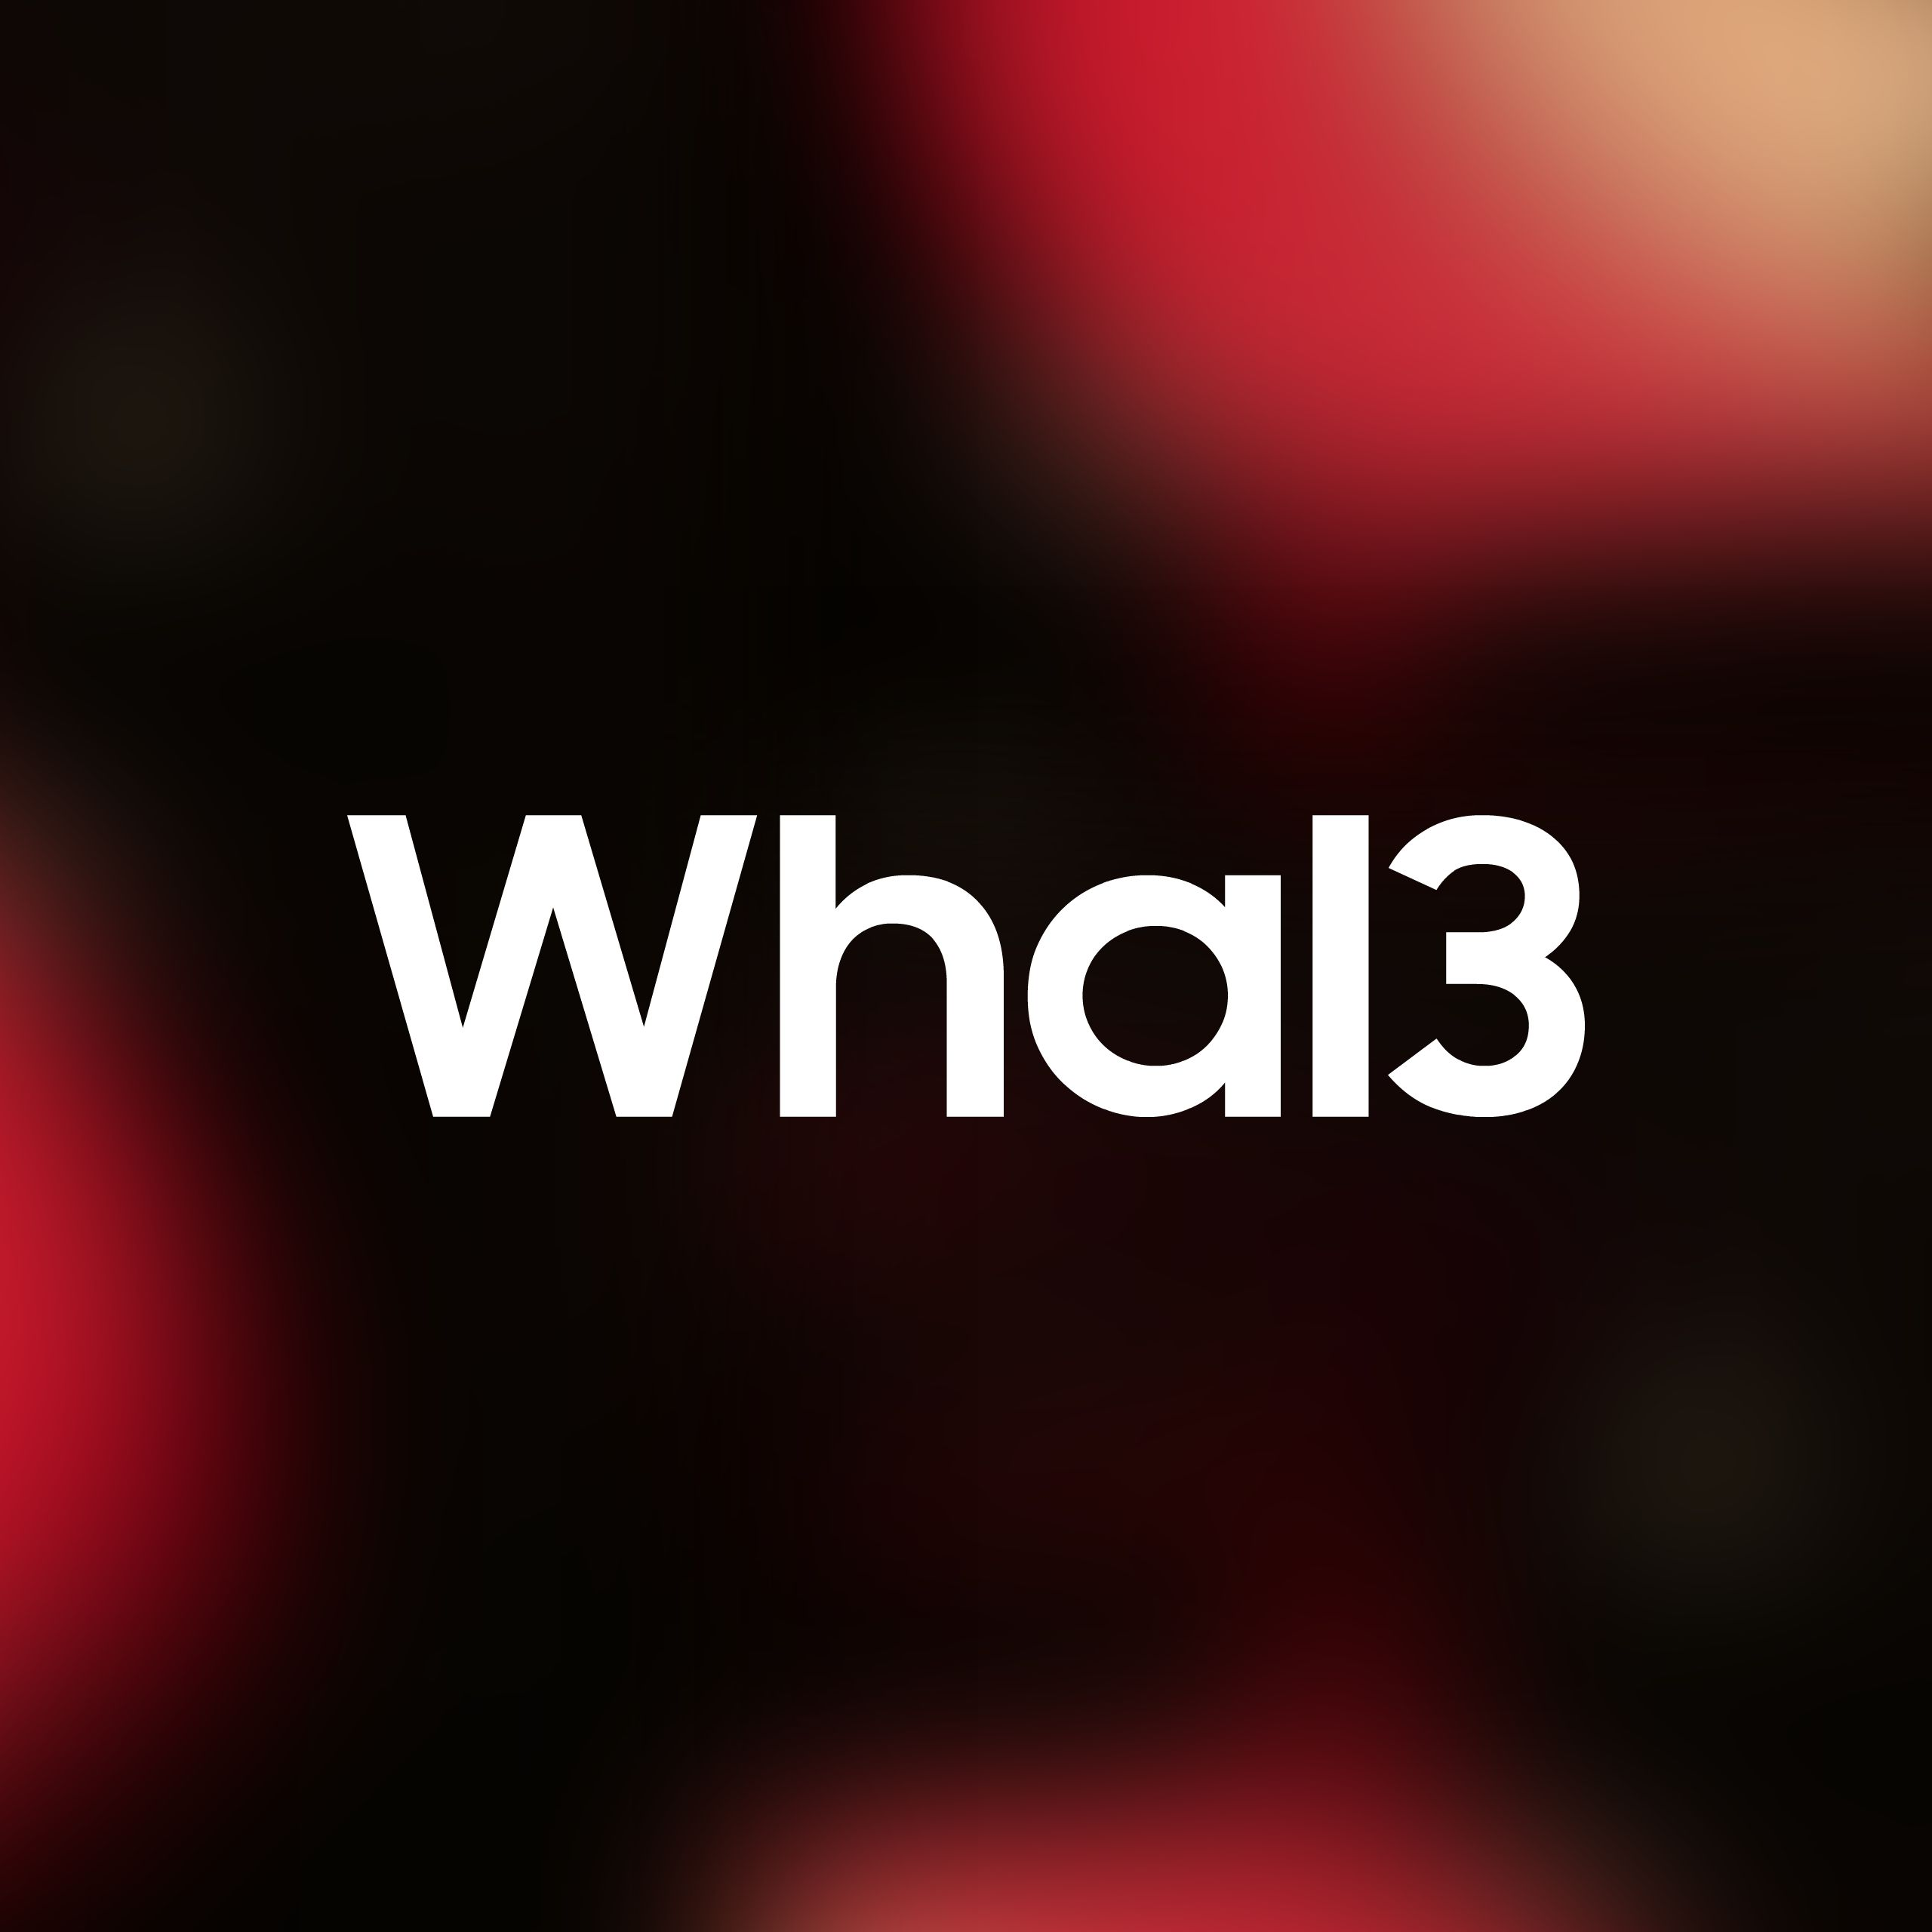 Whal3